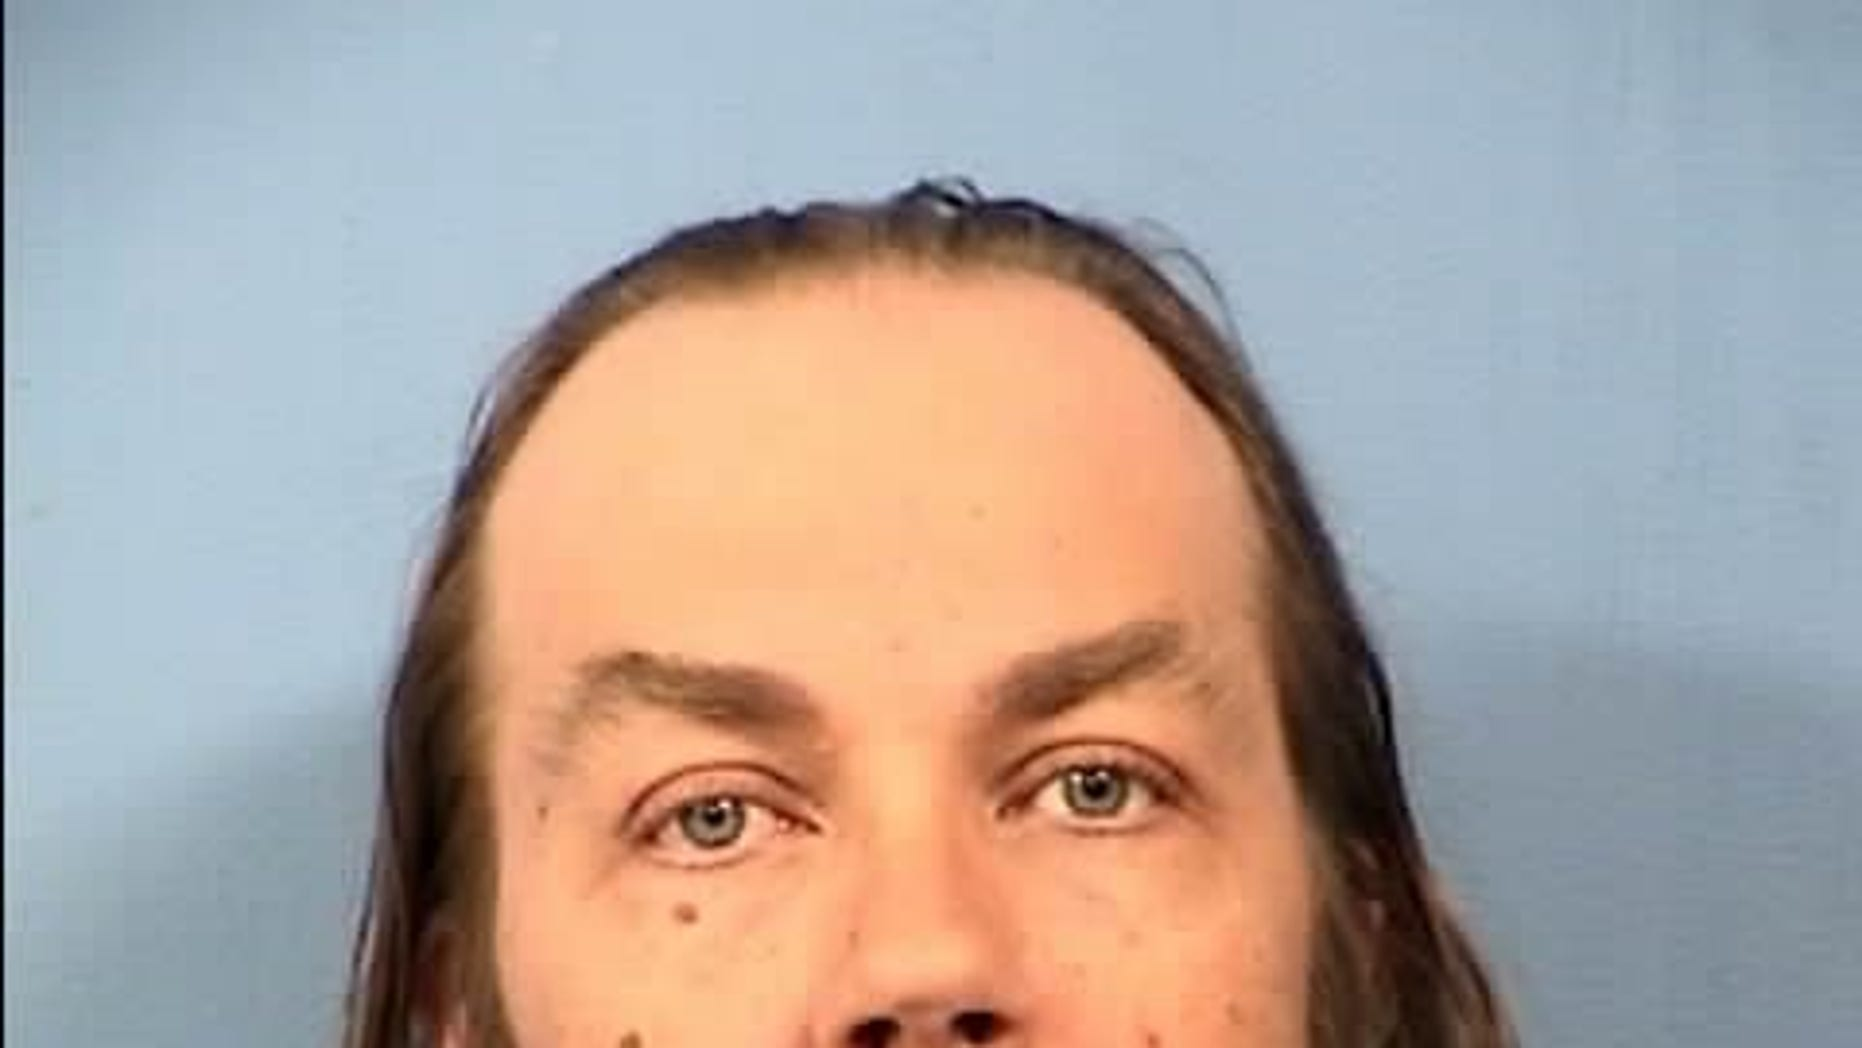 Thomas Spear, 43, was charged in the 1994 killing of a 71-year-old woman.